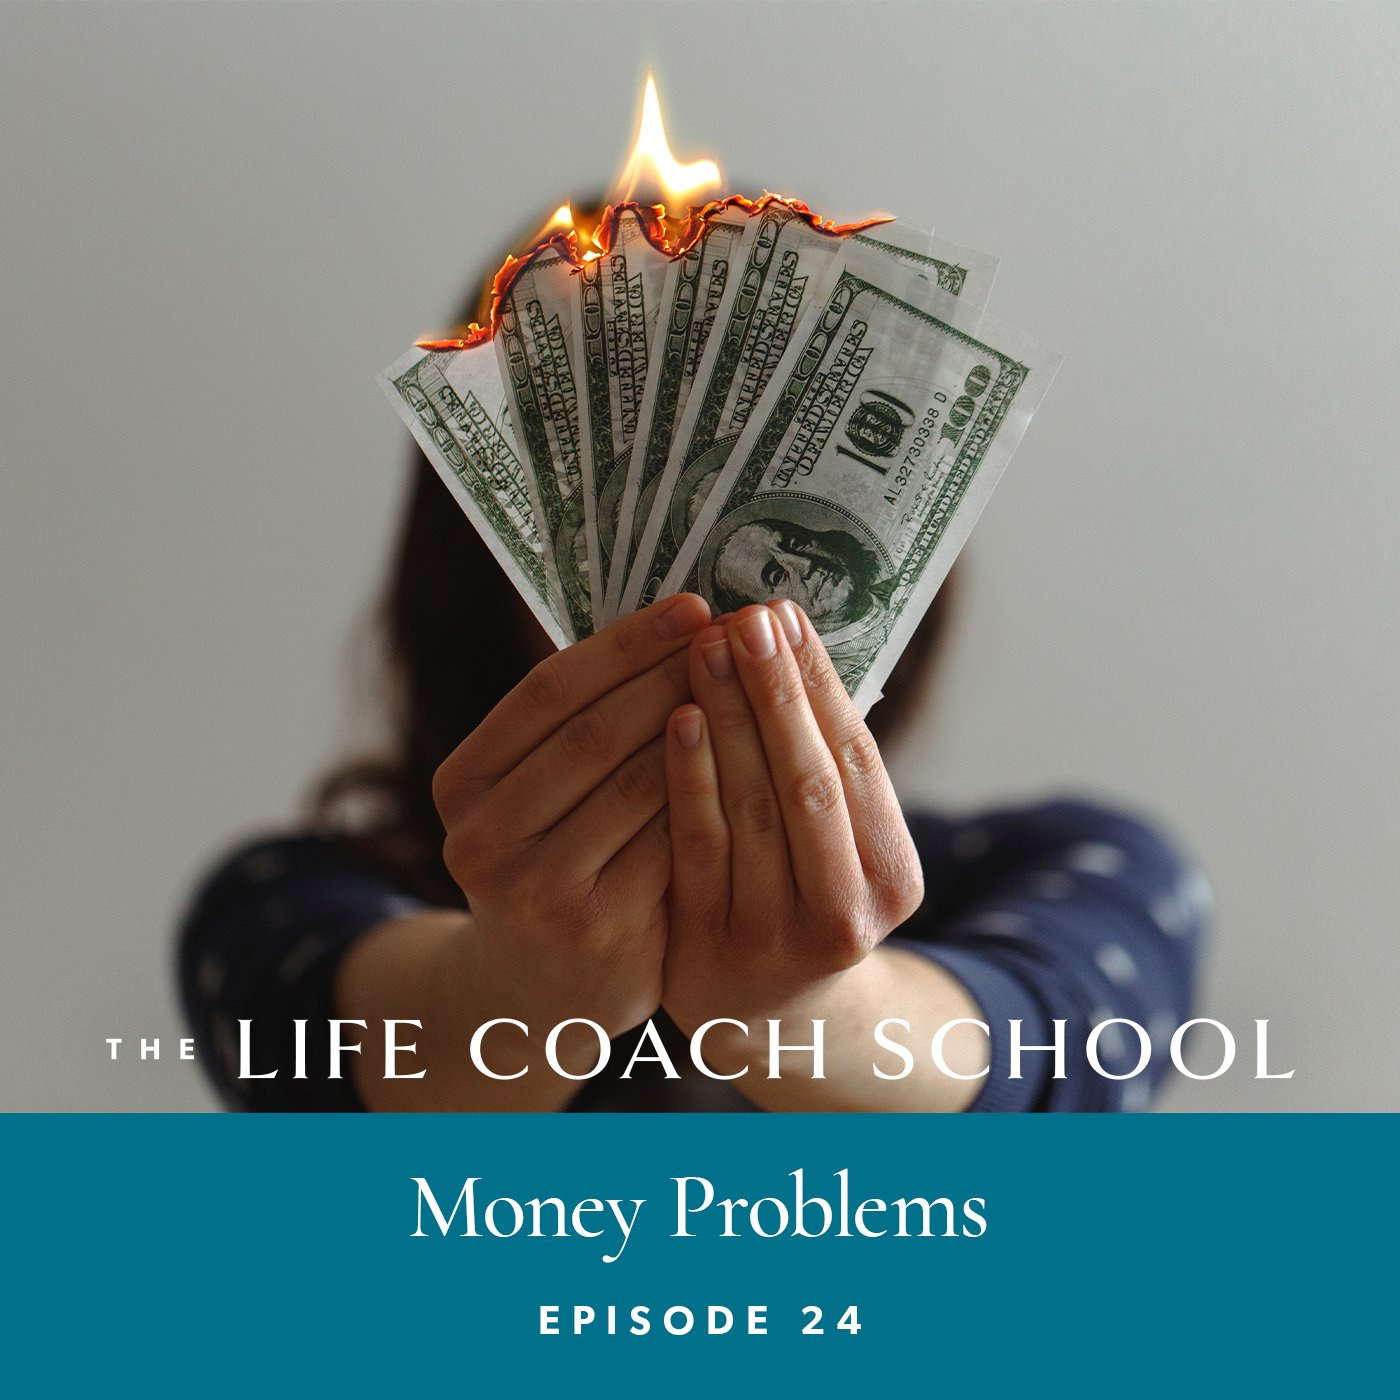 The Life Coach School Podcast with Brooke Castillo | Episode 24 | Money Problems